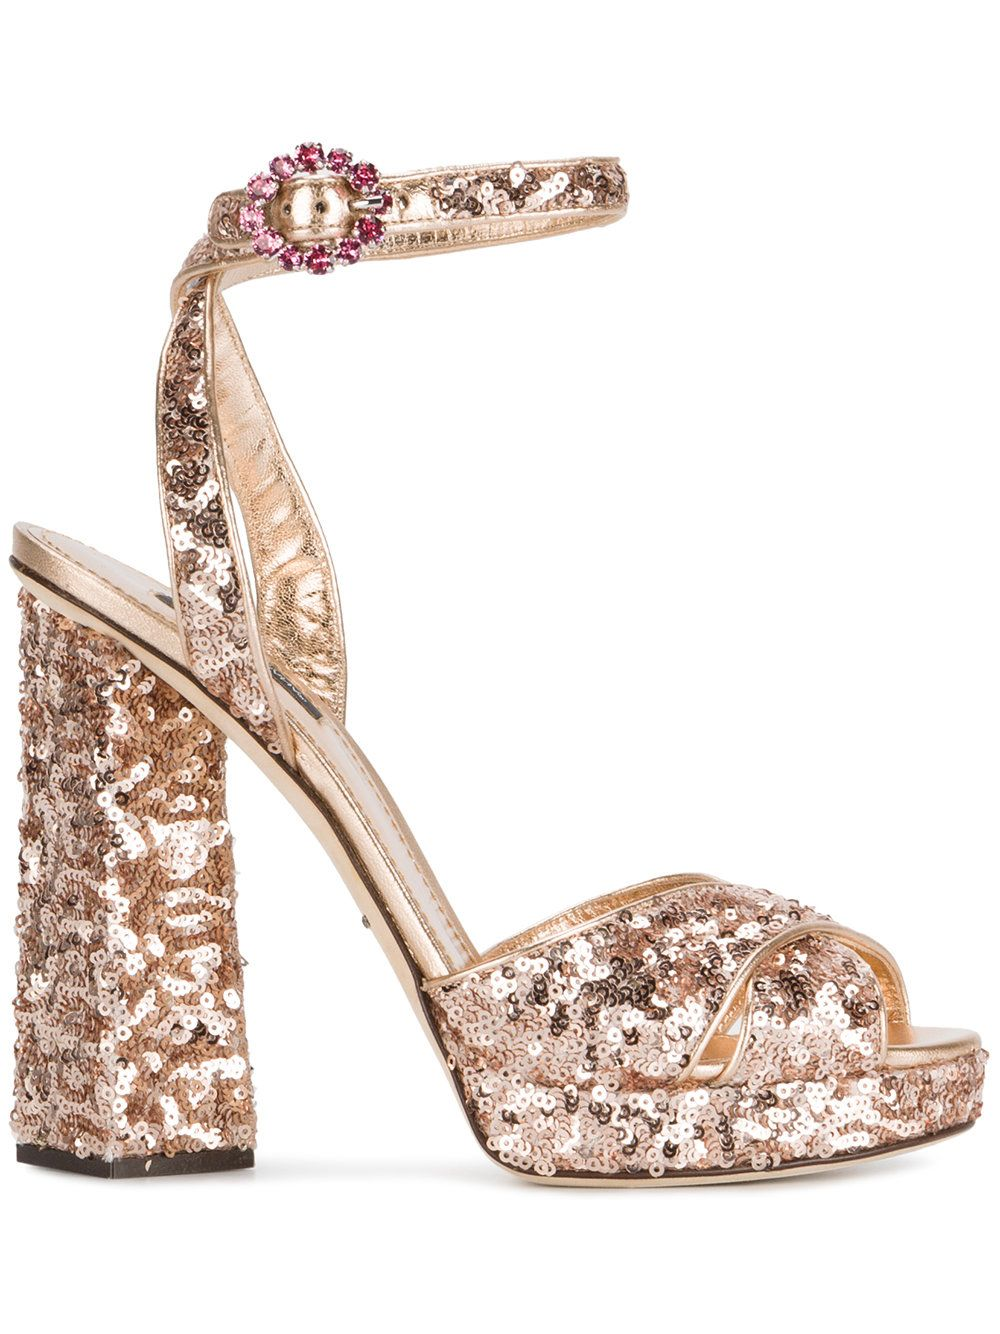 clearance free shipping outlet fashionable Dolce & Gabbana Sequin Platform Sandals buy cheap clearance store n7iTadAab